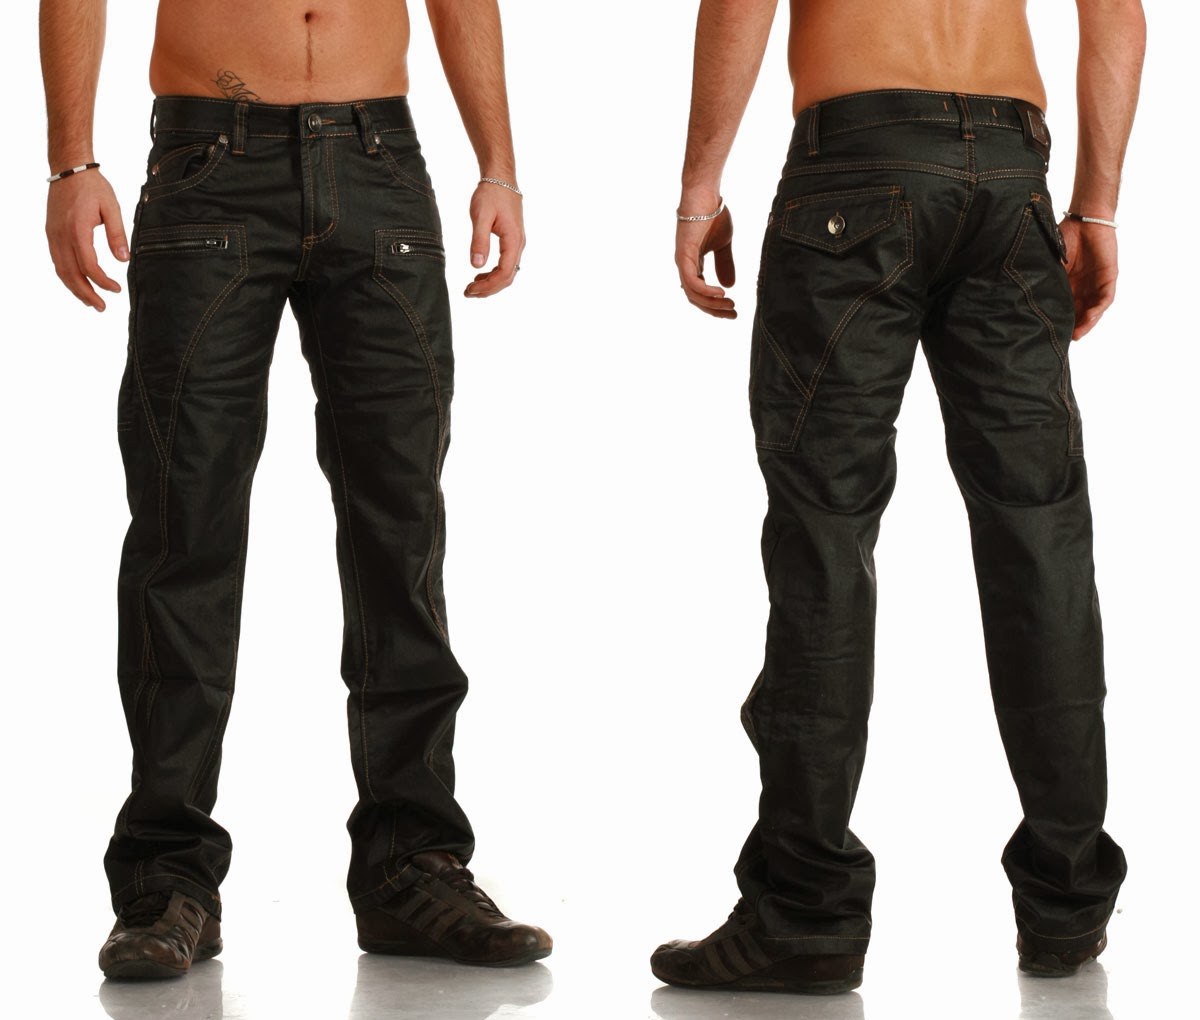 Skinny Black Jeans For Men | Fashion by Nessy